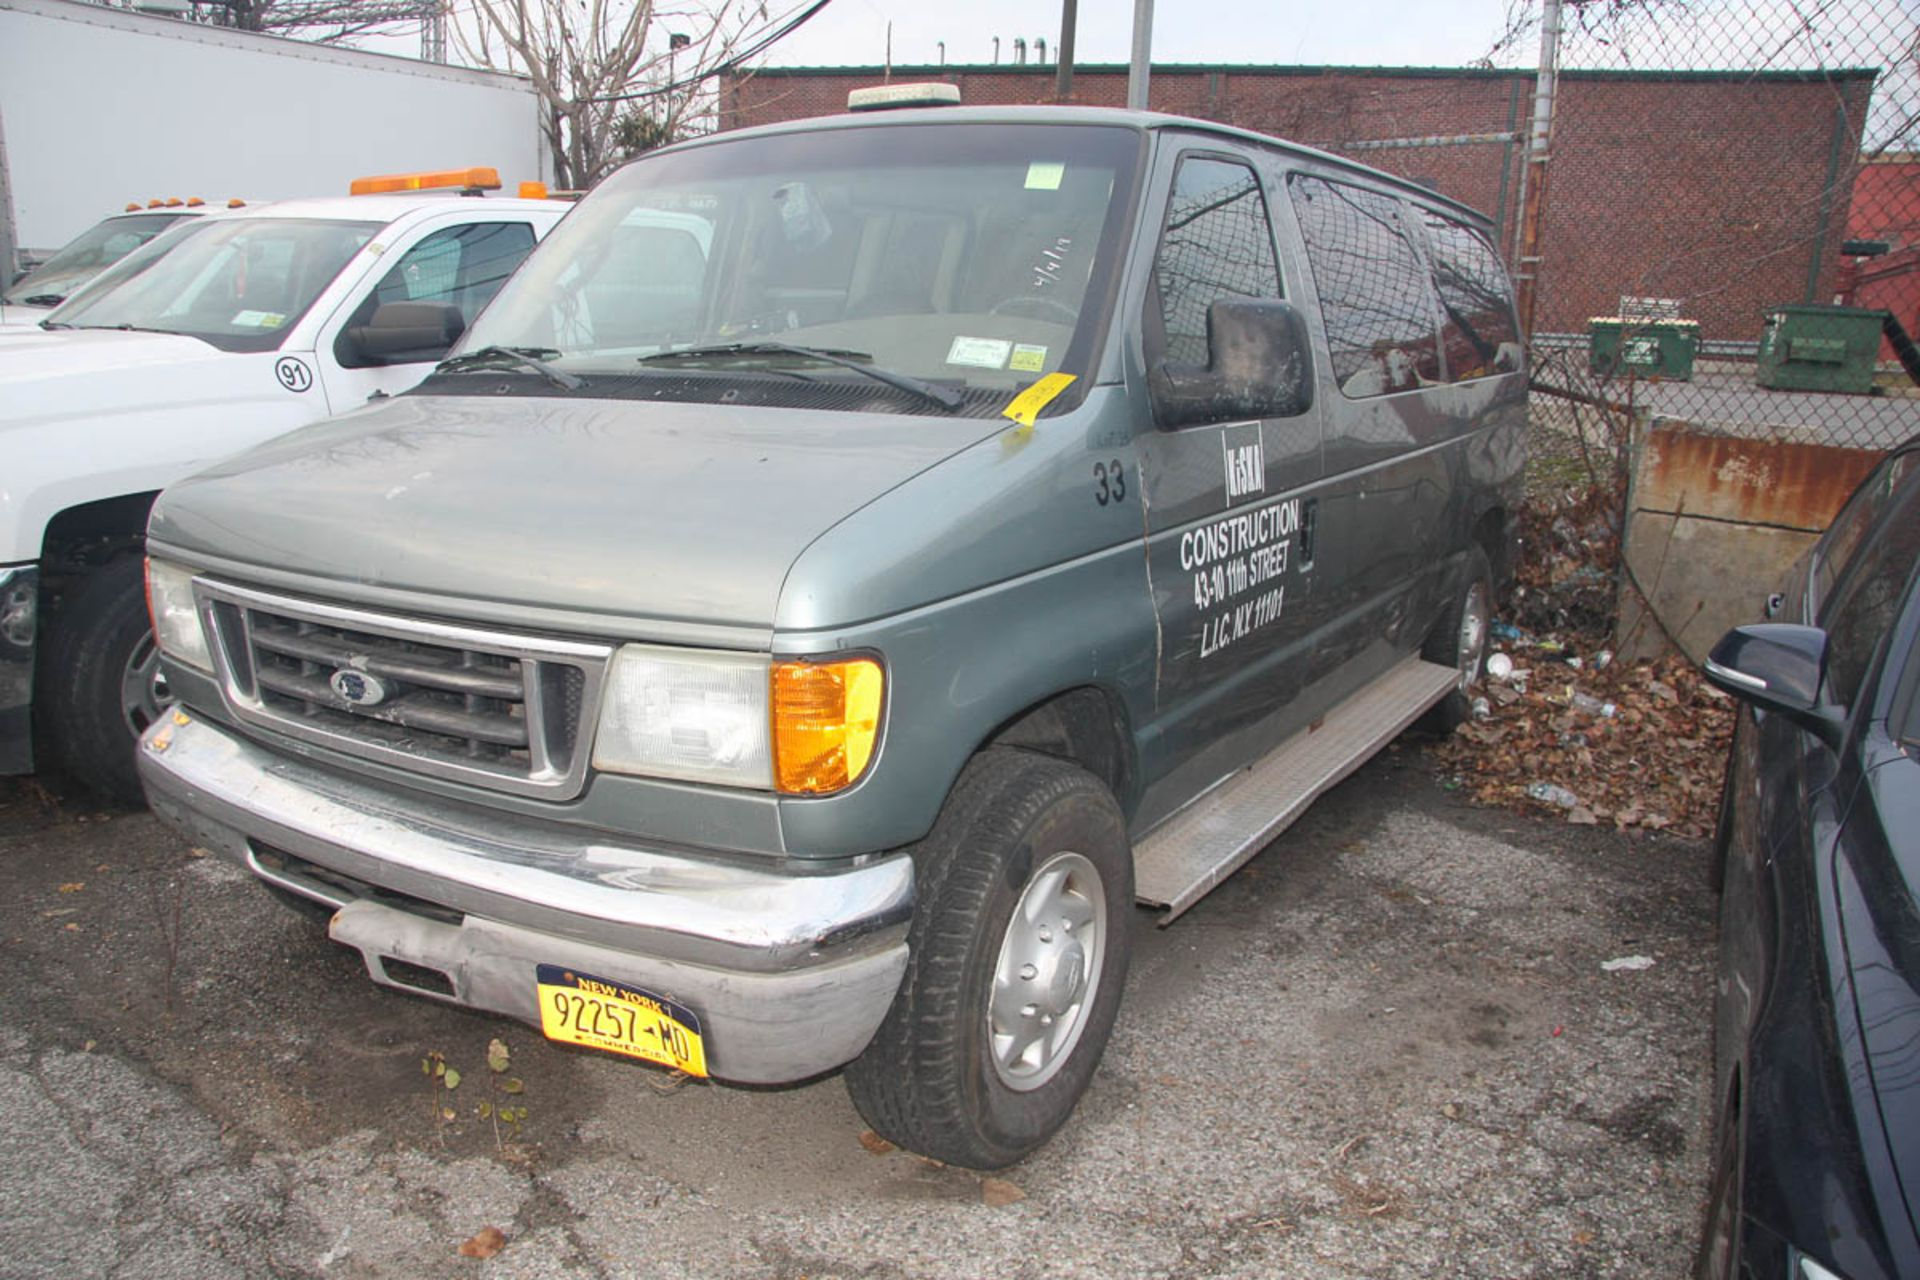 2006 FORD E-350 VAN, WITH WINDOWS, SIDE DOOR, AUTOMATIC, APPROXIMATELY 91,860 MILES, VIN: 1FBNE31L2 - Image 2 of 10